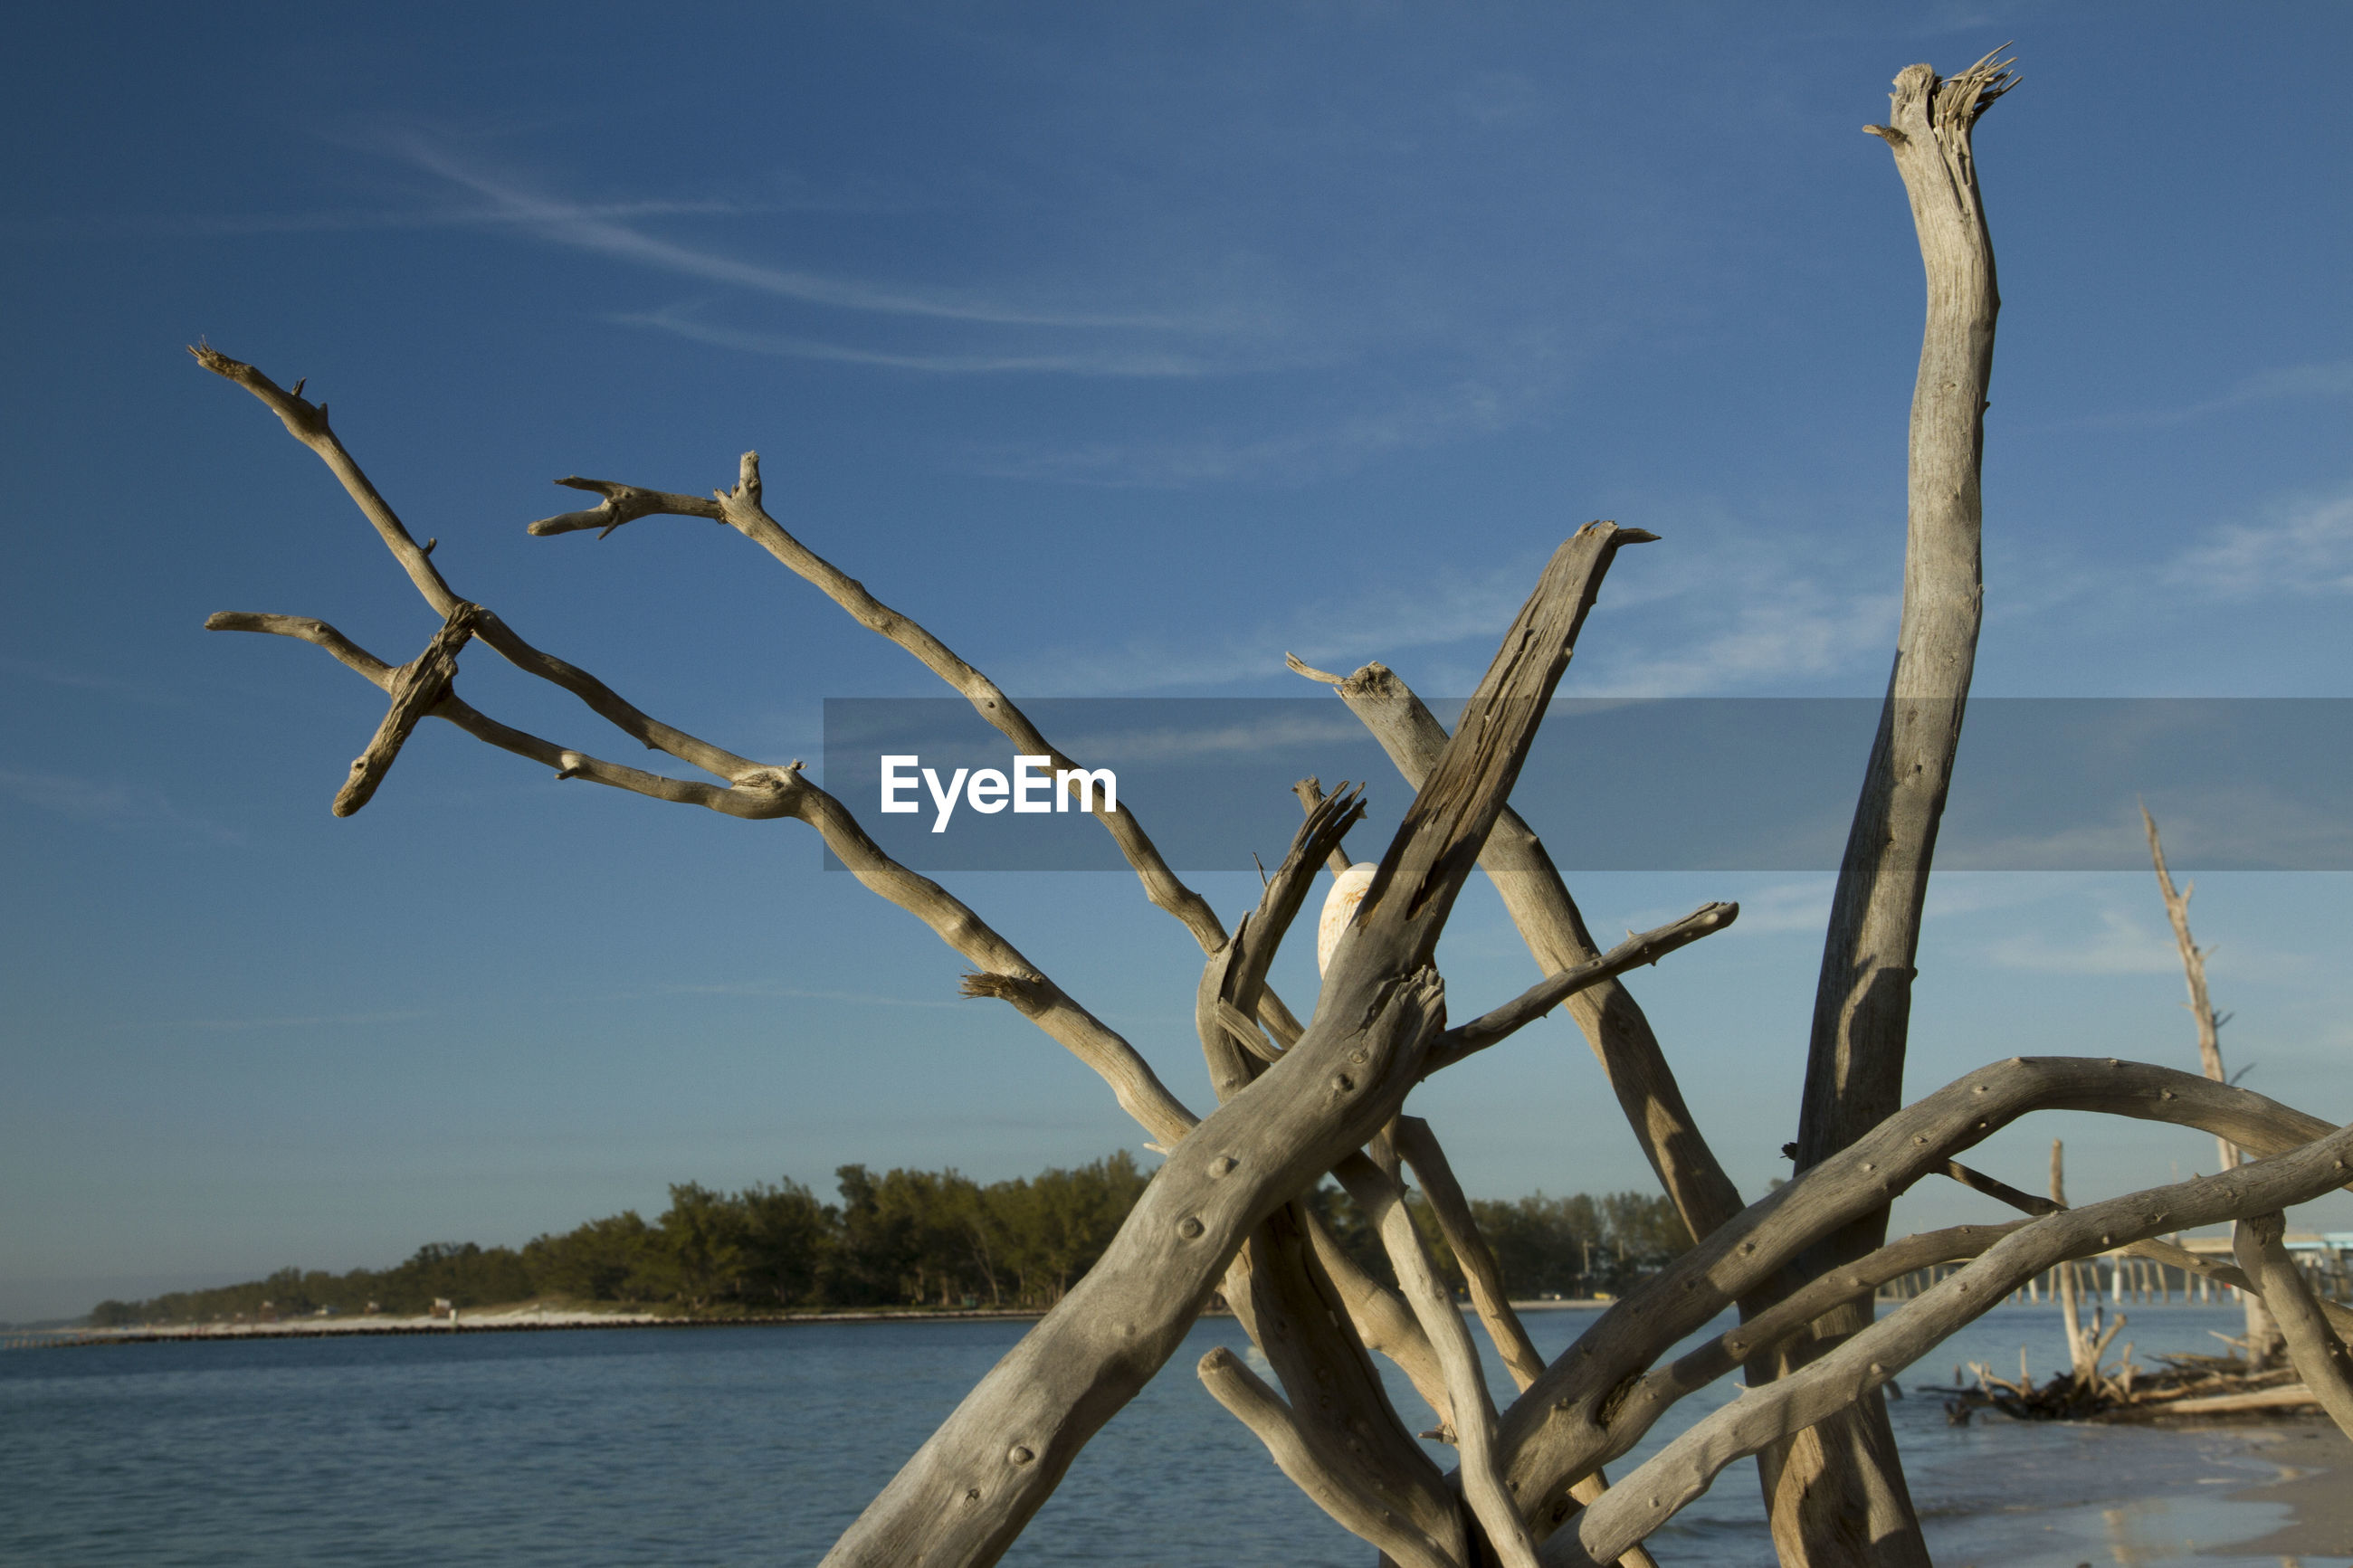 VIEW OF TREE IN LAKE AGAINST SKY